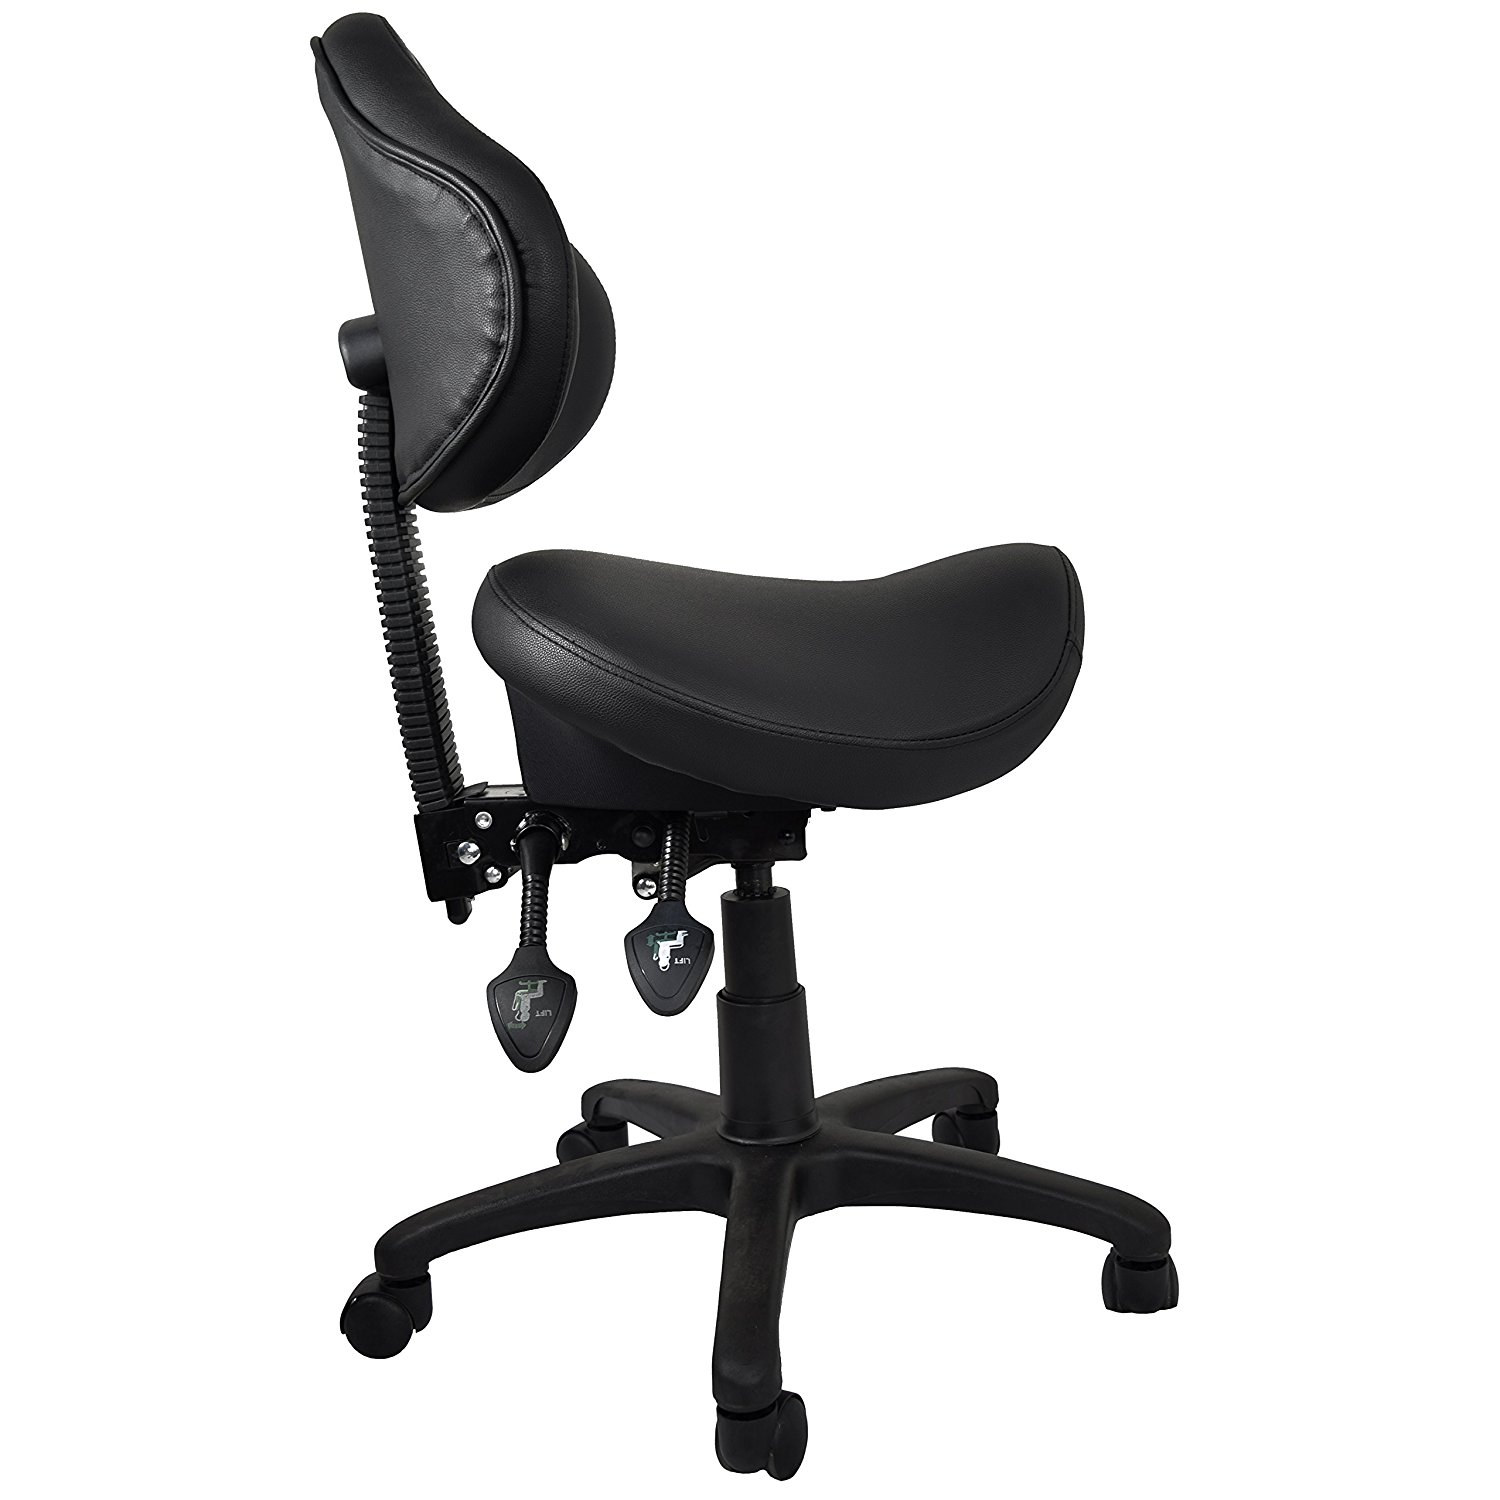 comfortable chairs size chair posture computer and orthopedic of support seat design task leather executive arms ergonomic best full adjustable desk mesh price back reclining for office bottom